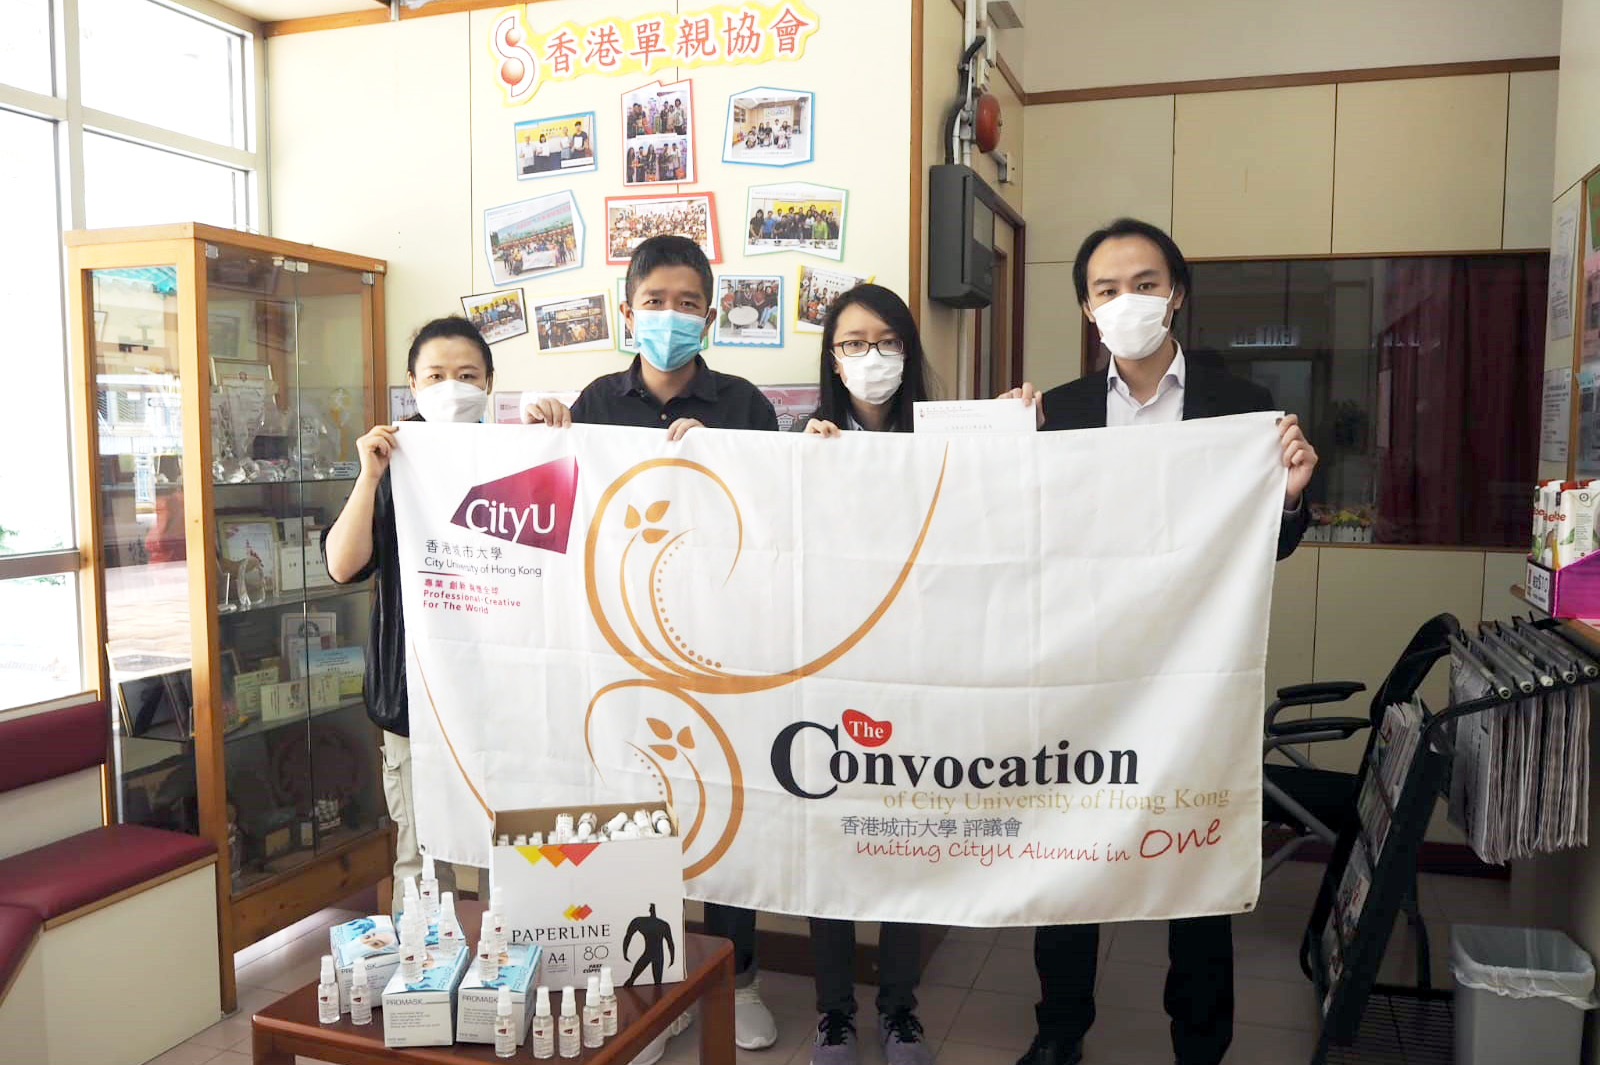 The Convocation presented alcohol handrubs provided by CityU to a beneficiary organisation.